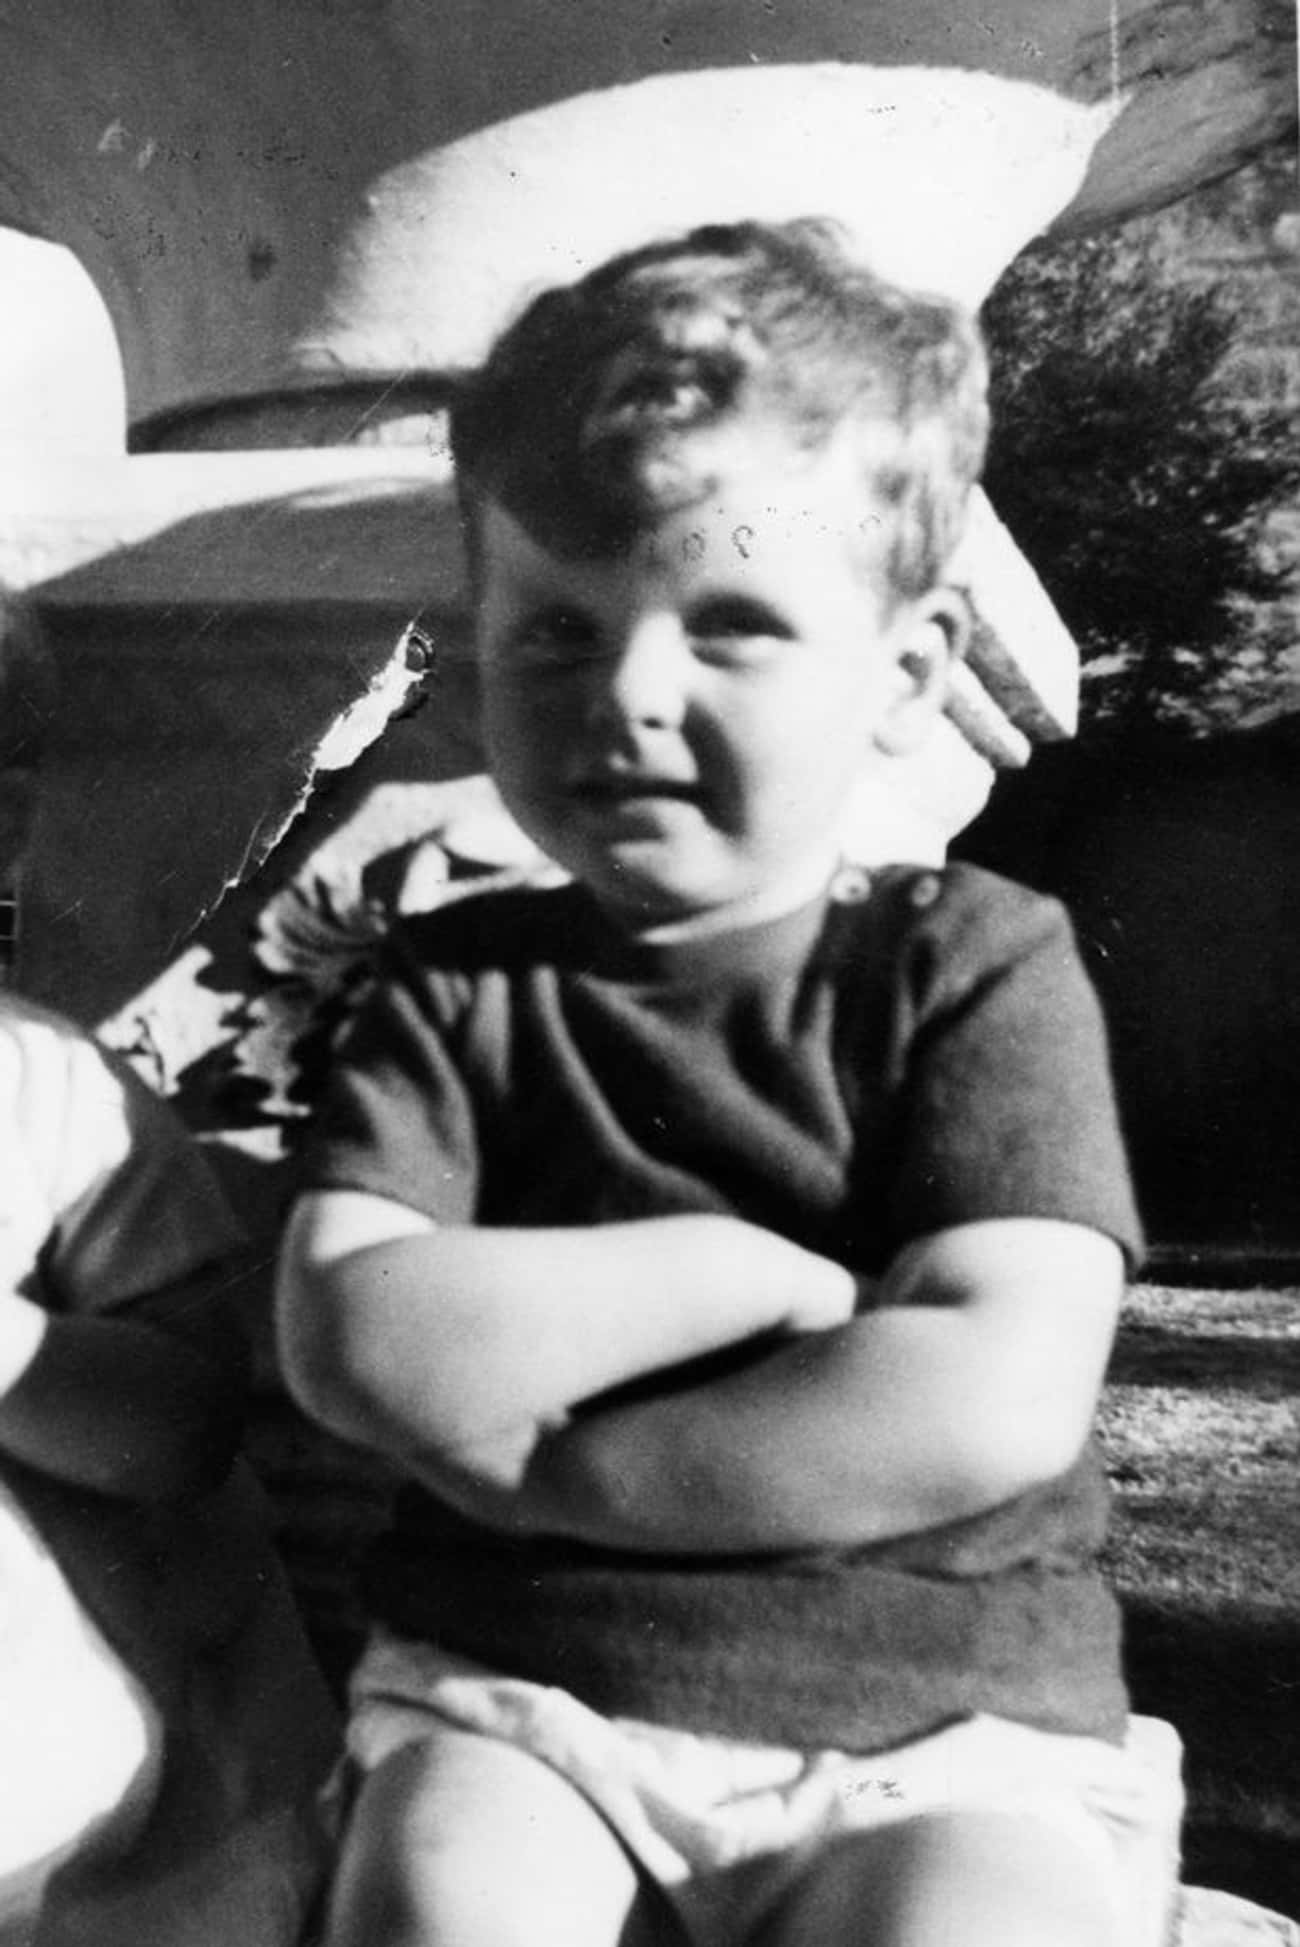 Young Peter Capaldi Baby Pictu is listed (or ranked) 1 on the list 24 Pictures of Young Peter Capaldi